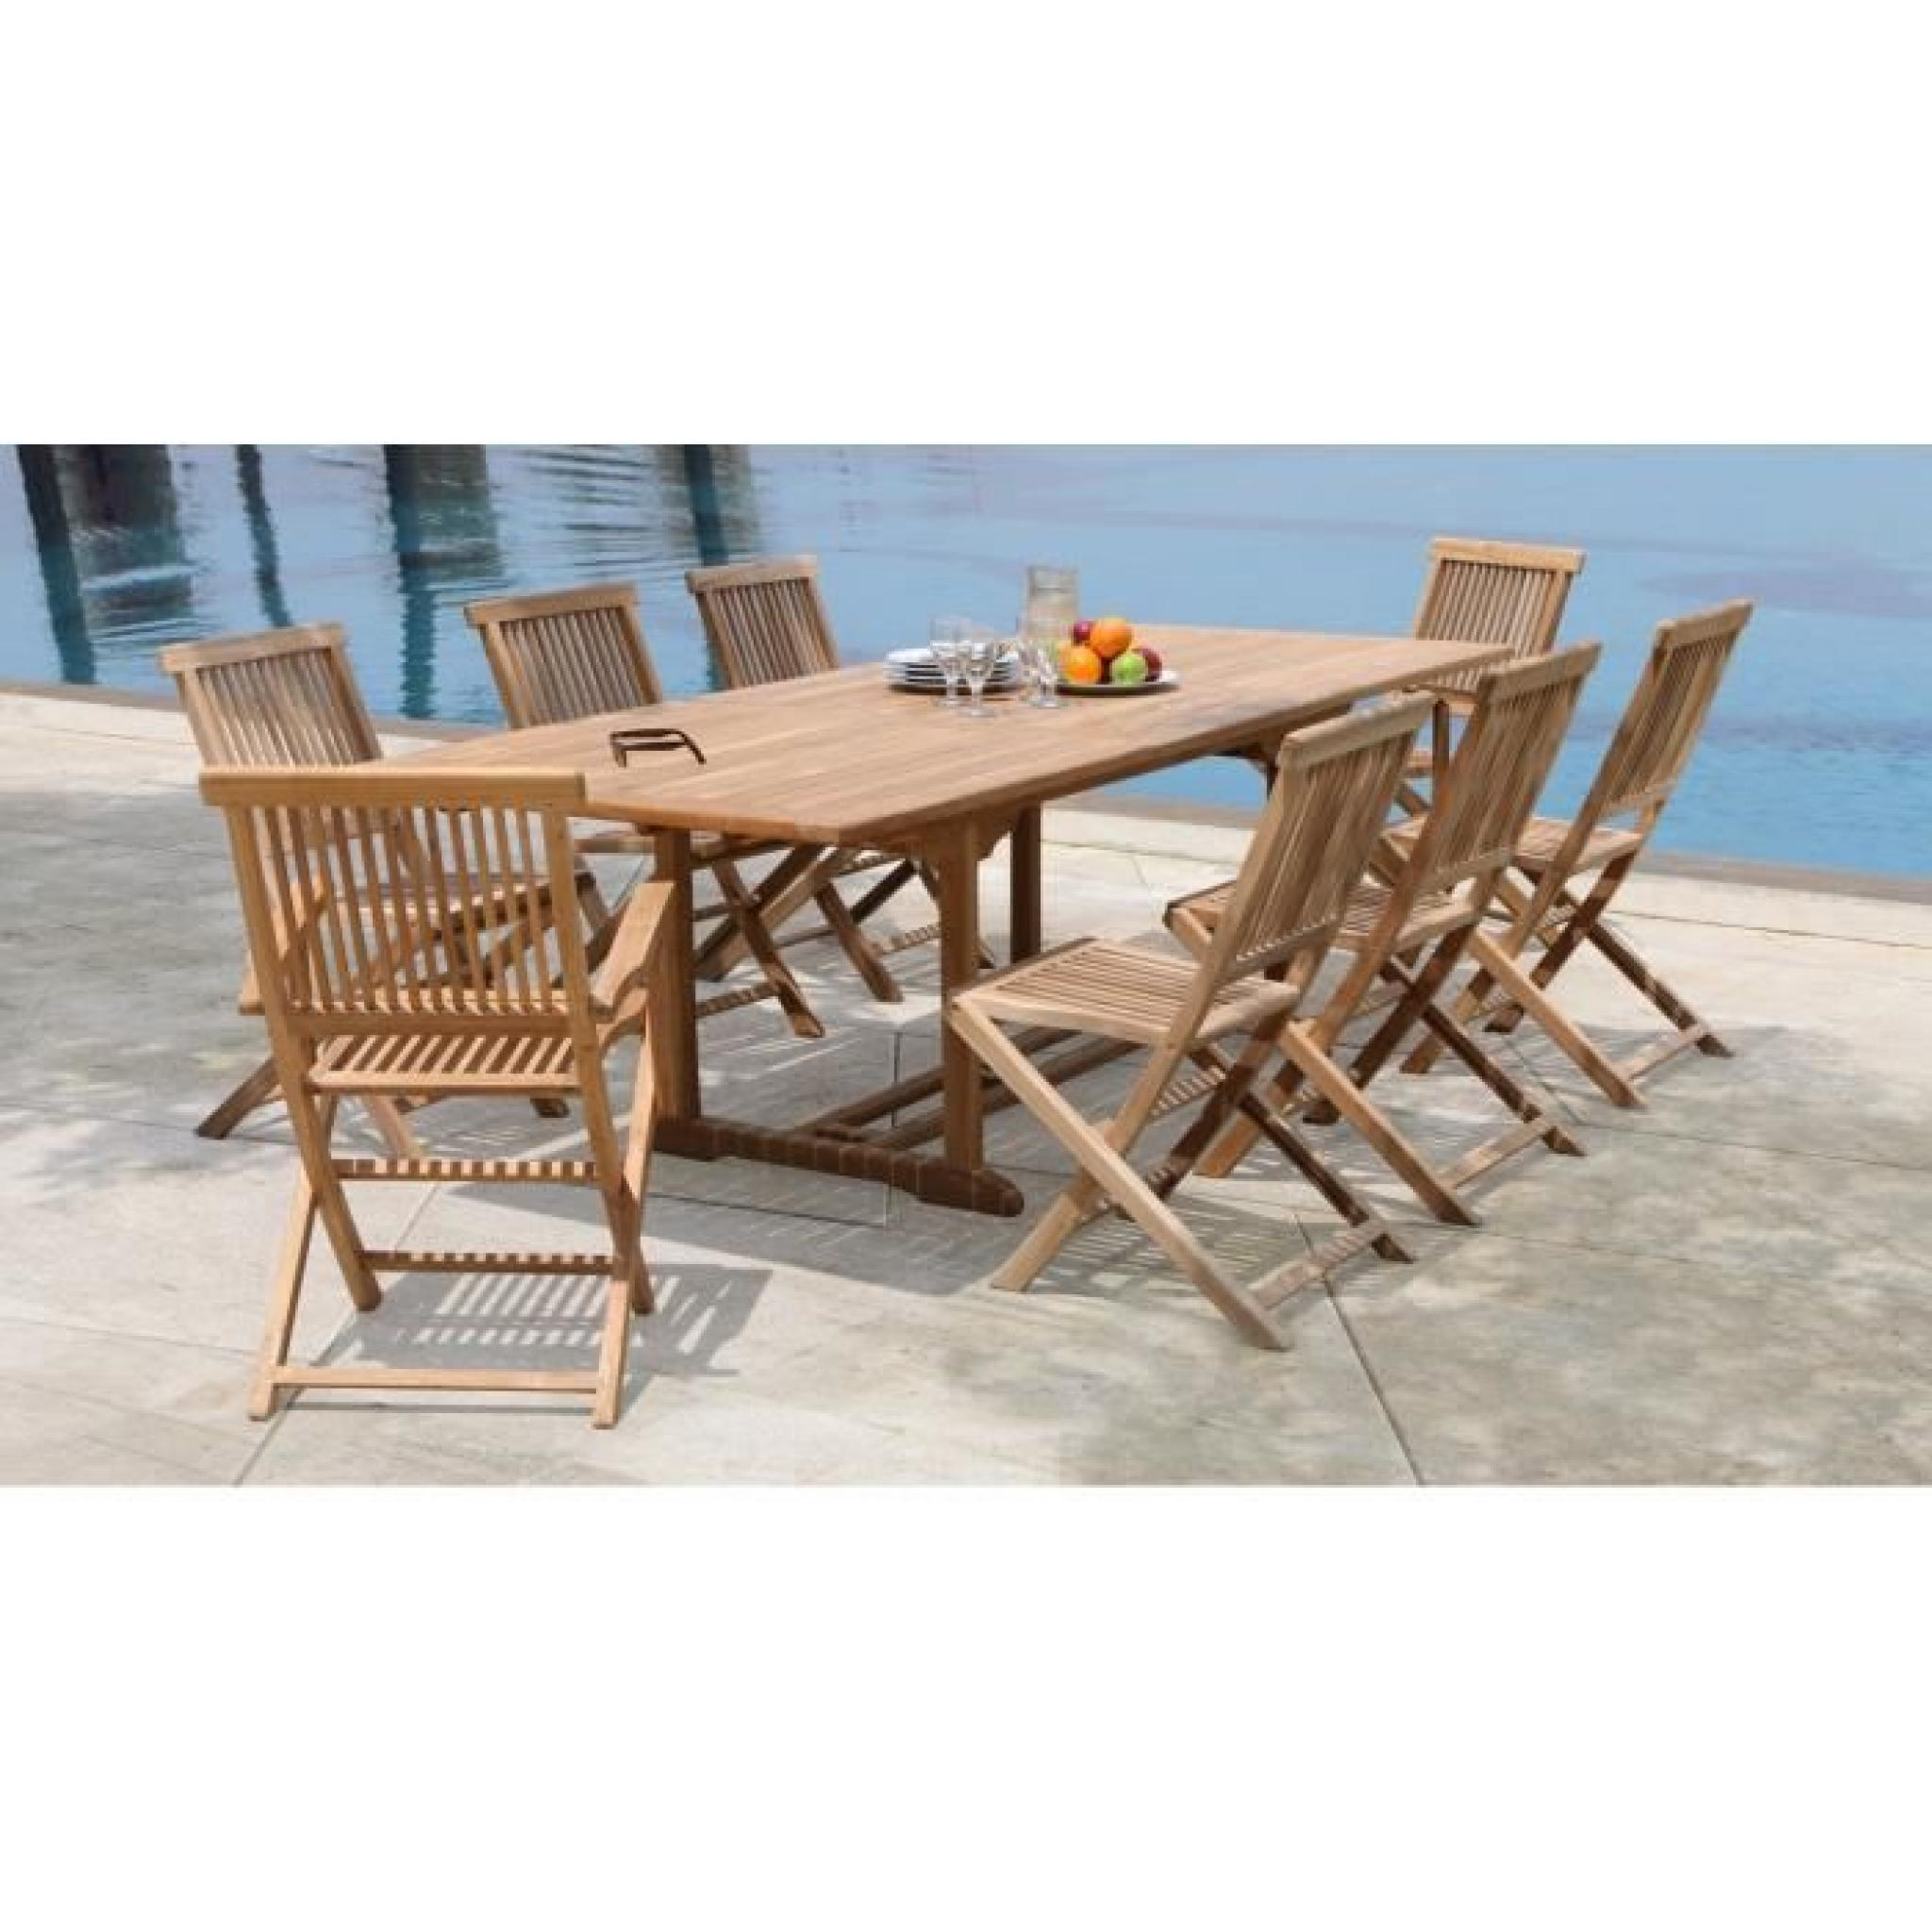 ARTIGUES Ensemble de jardin en bois teck massif 6 places - Table extensible  - Marron